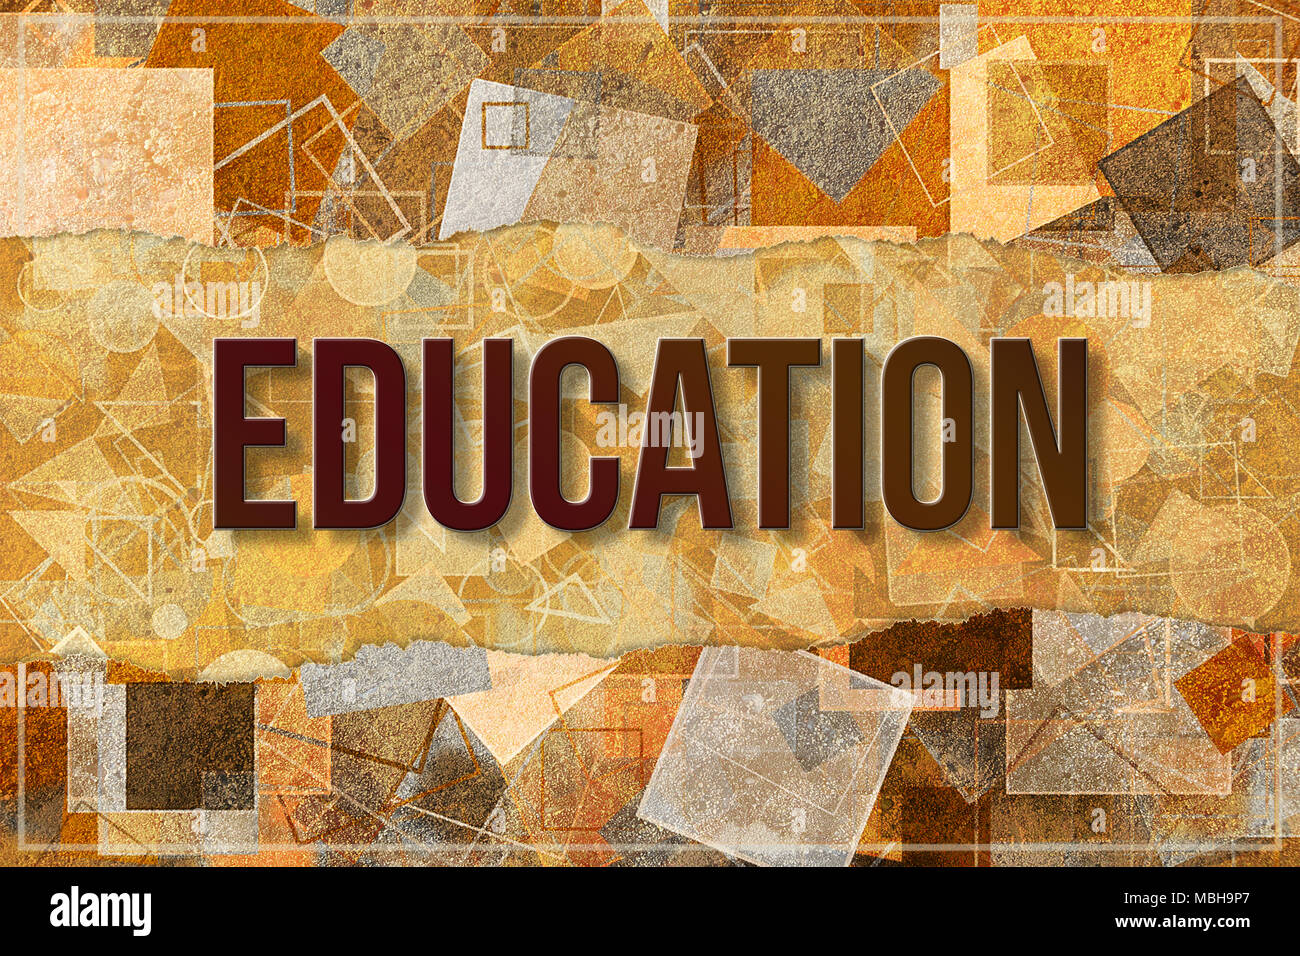 Education Business Finance Conceptual Words With Texture Background For Web Page Graphic Design Catalog Or Wallpaper Stock Photo Alamy